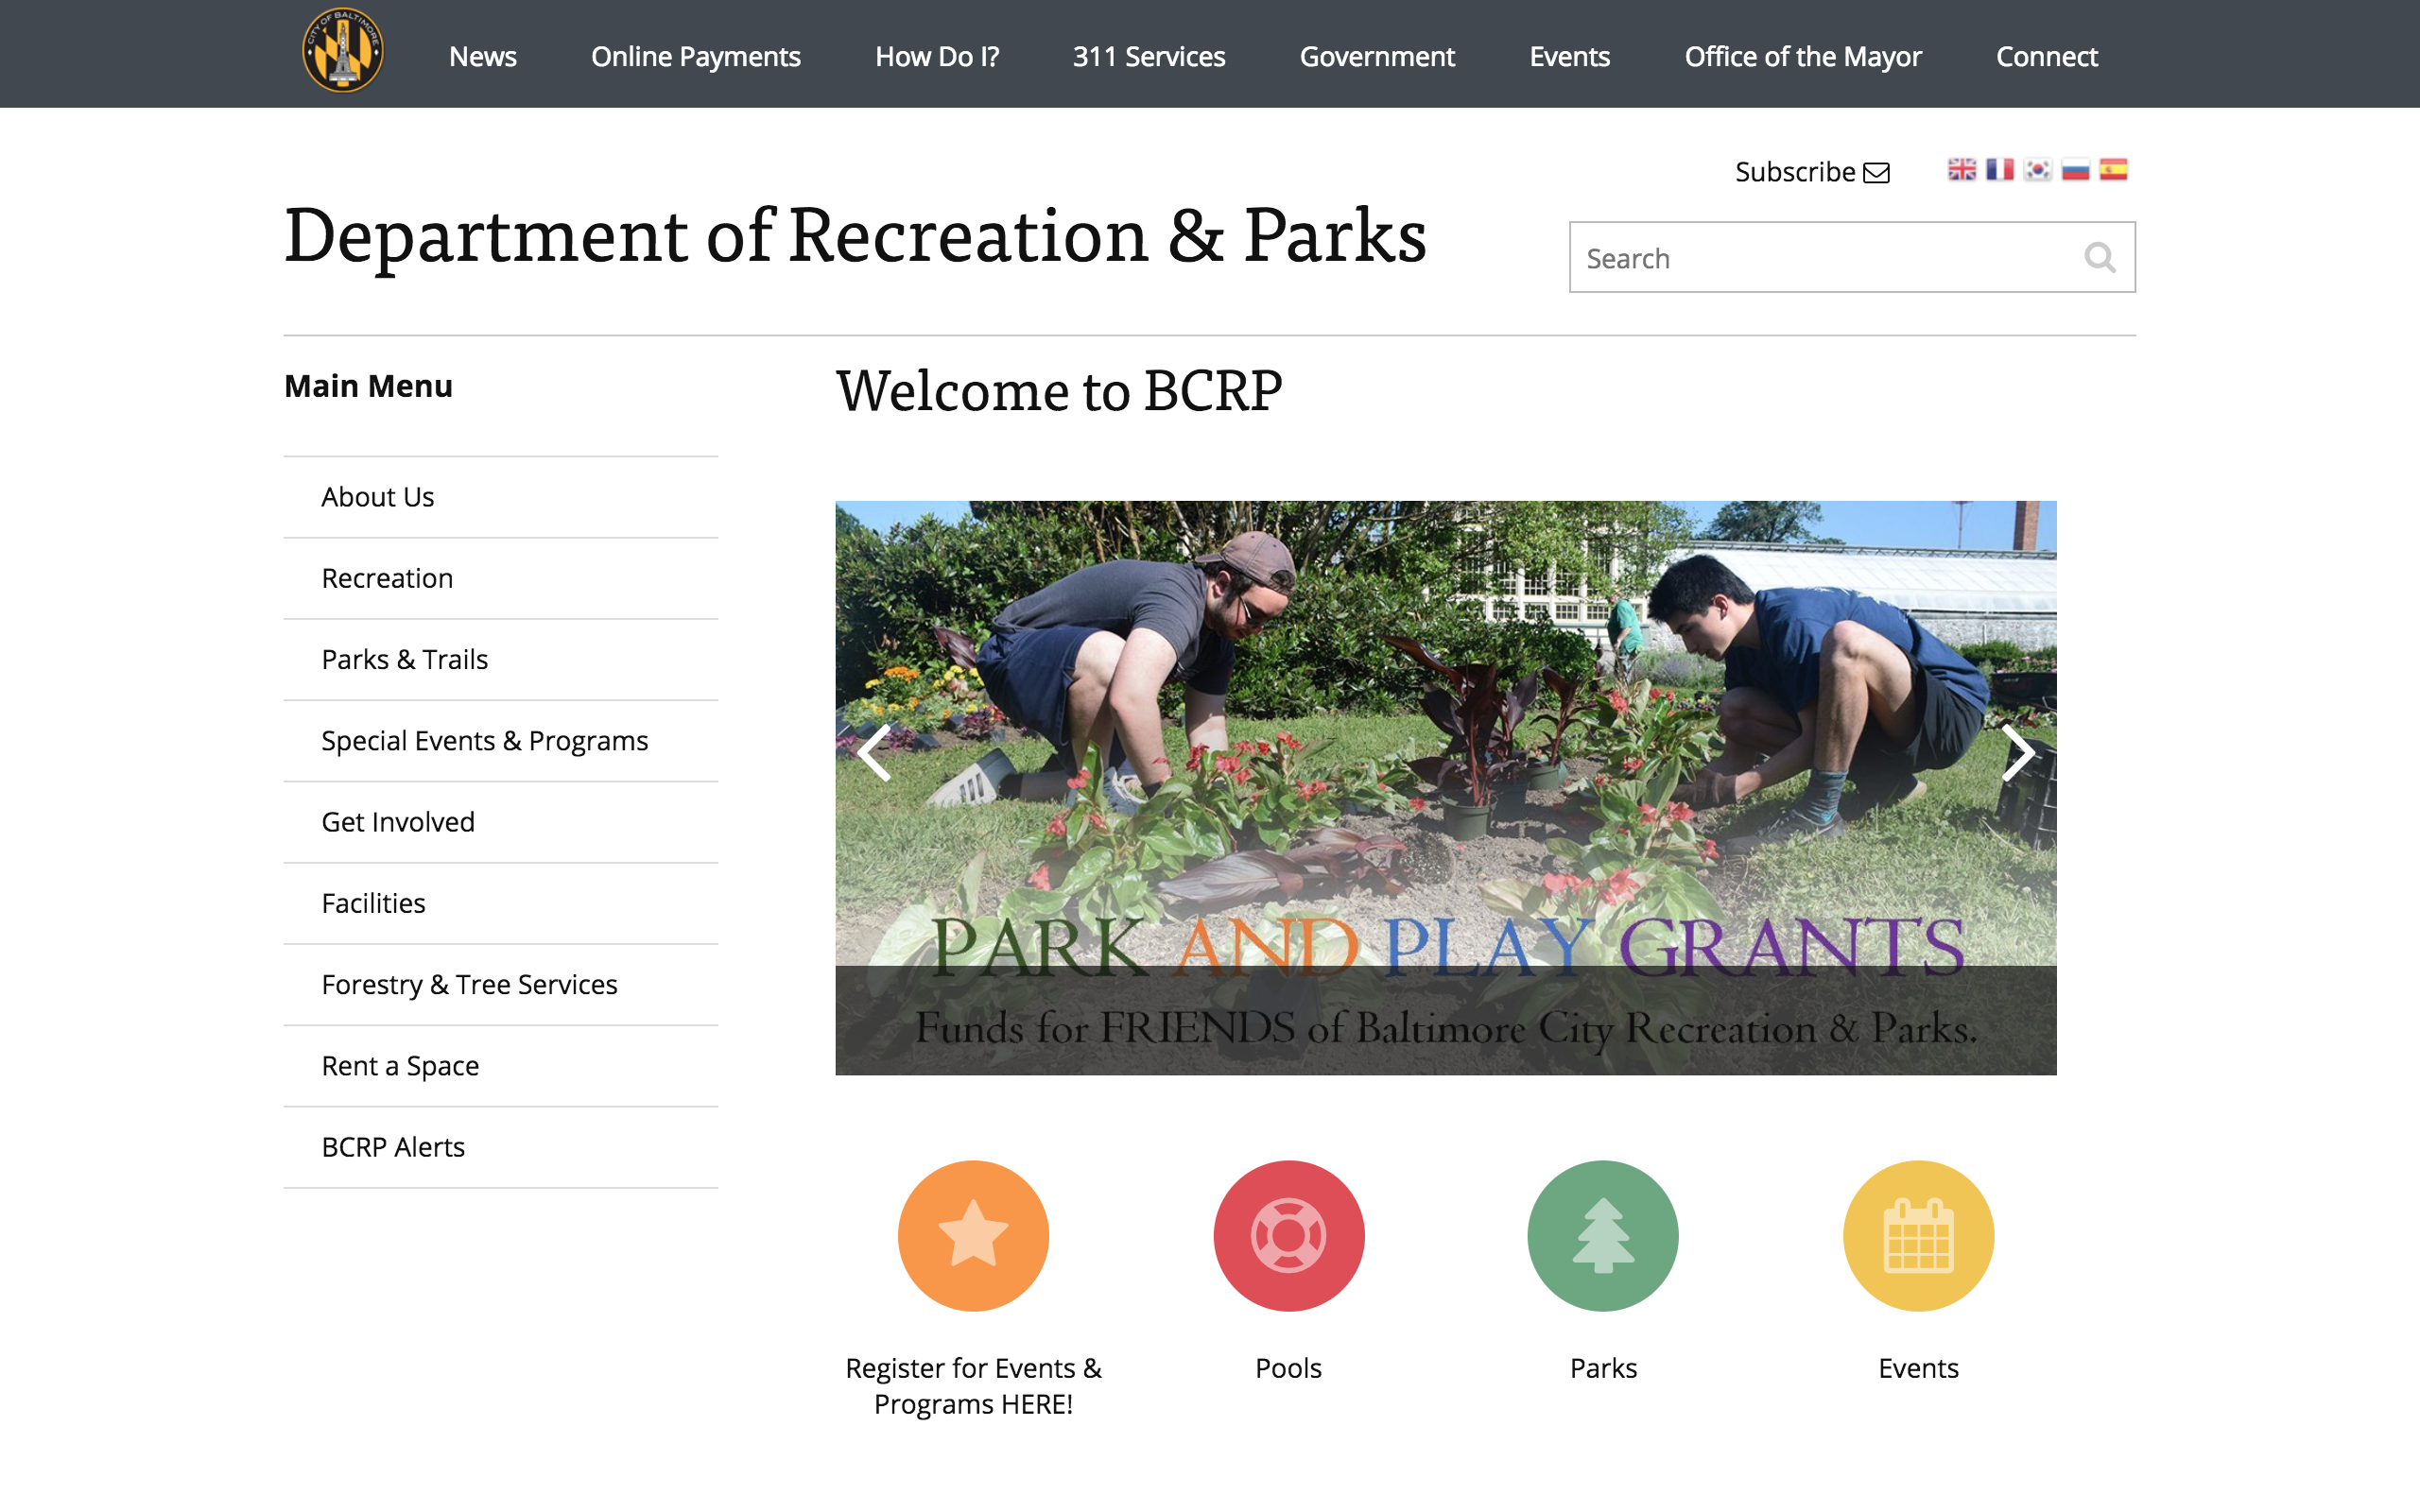 The Department of Recreation and Parks' website will appear.